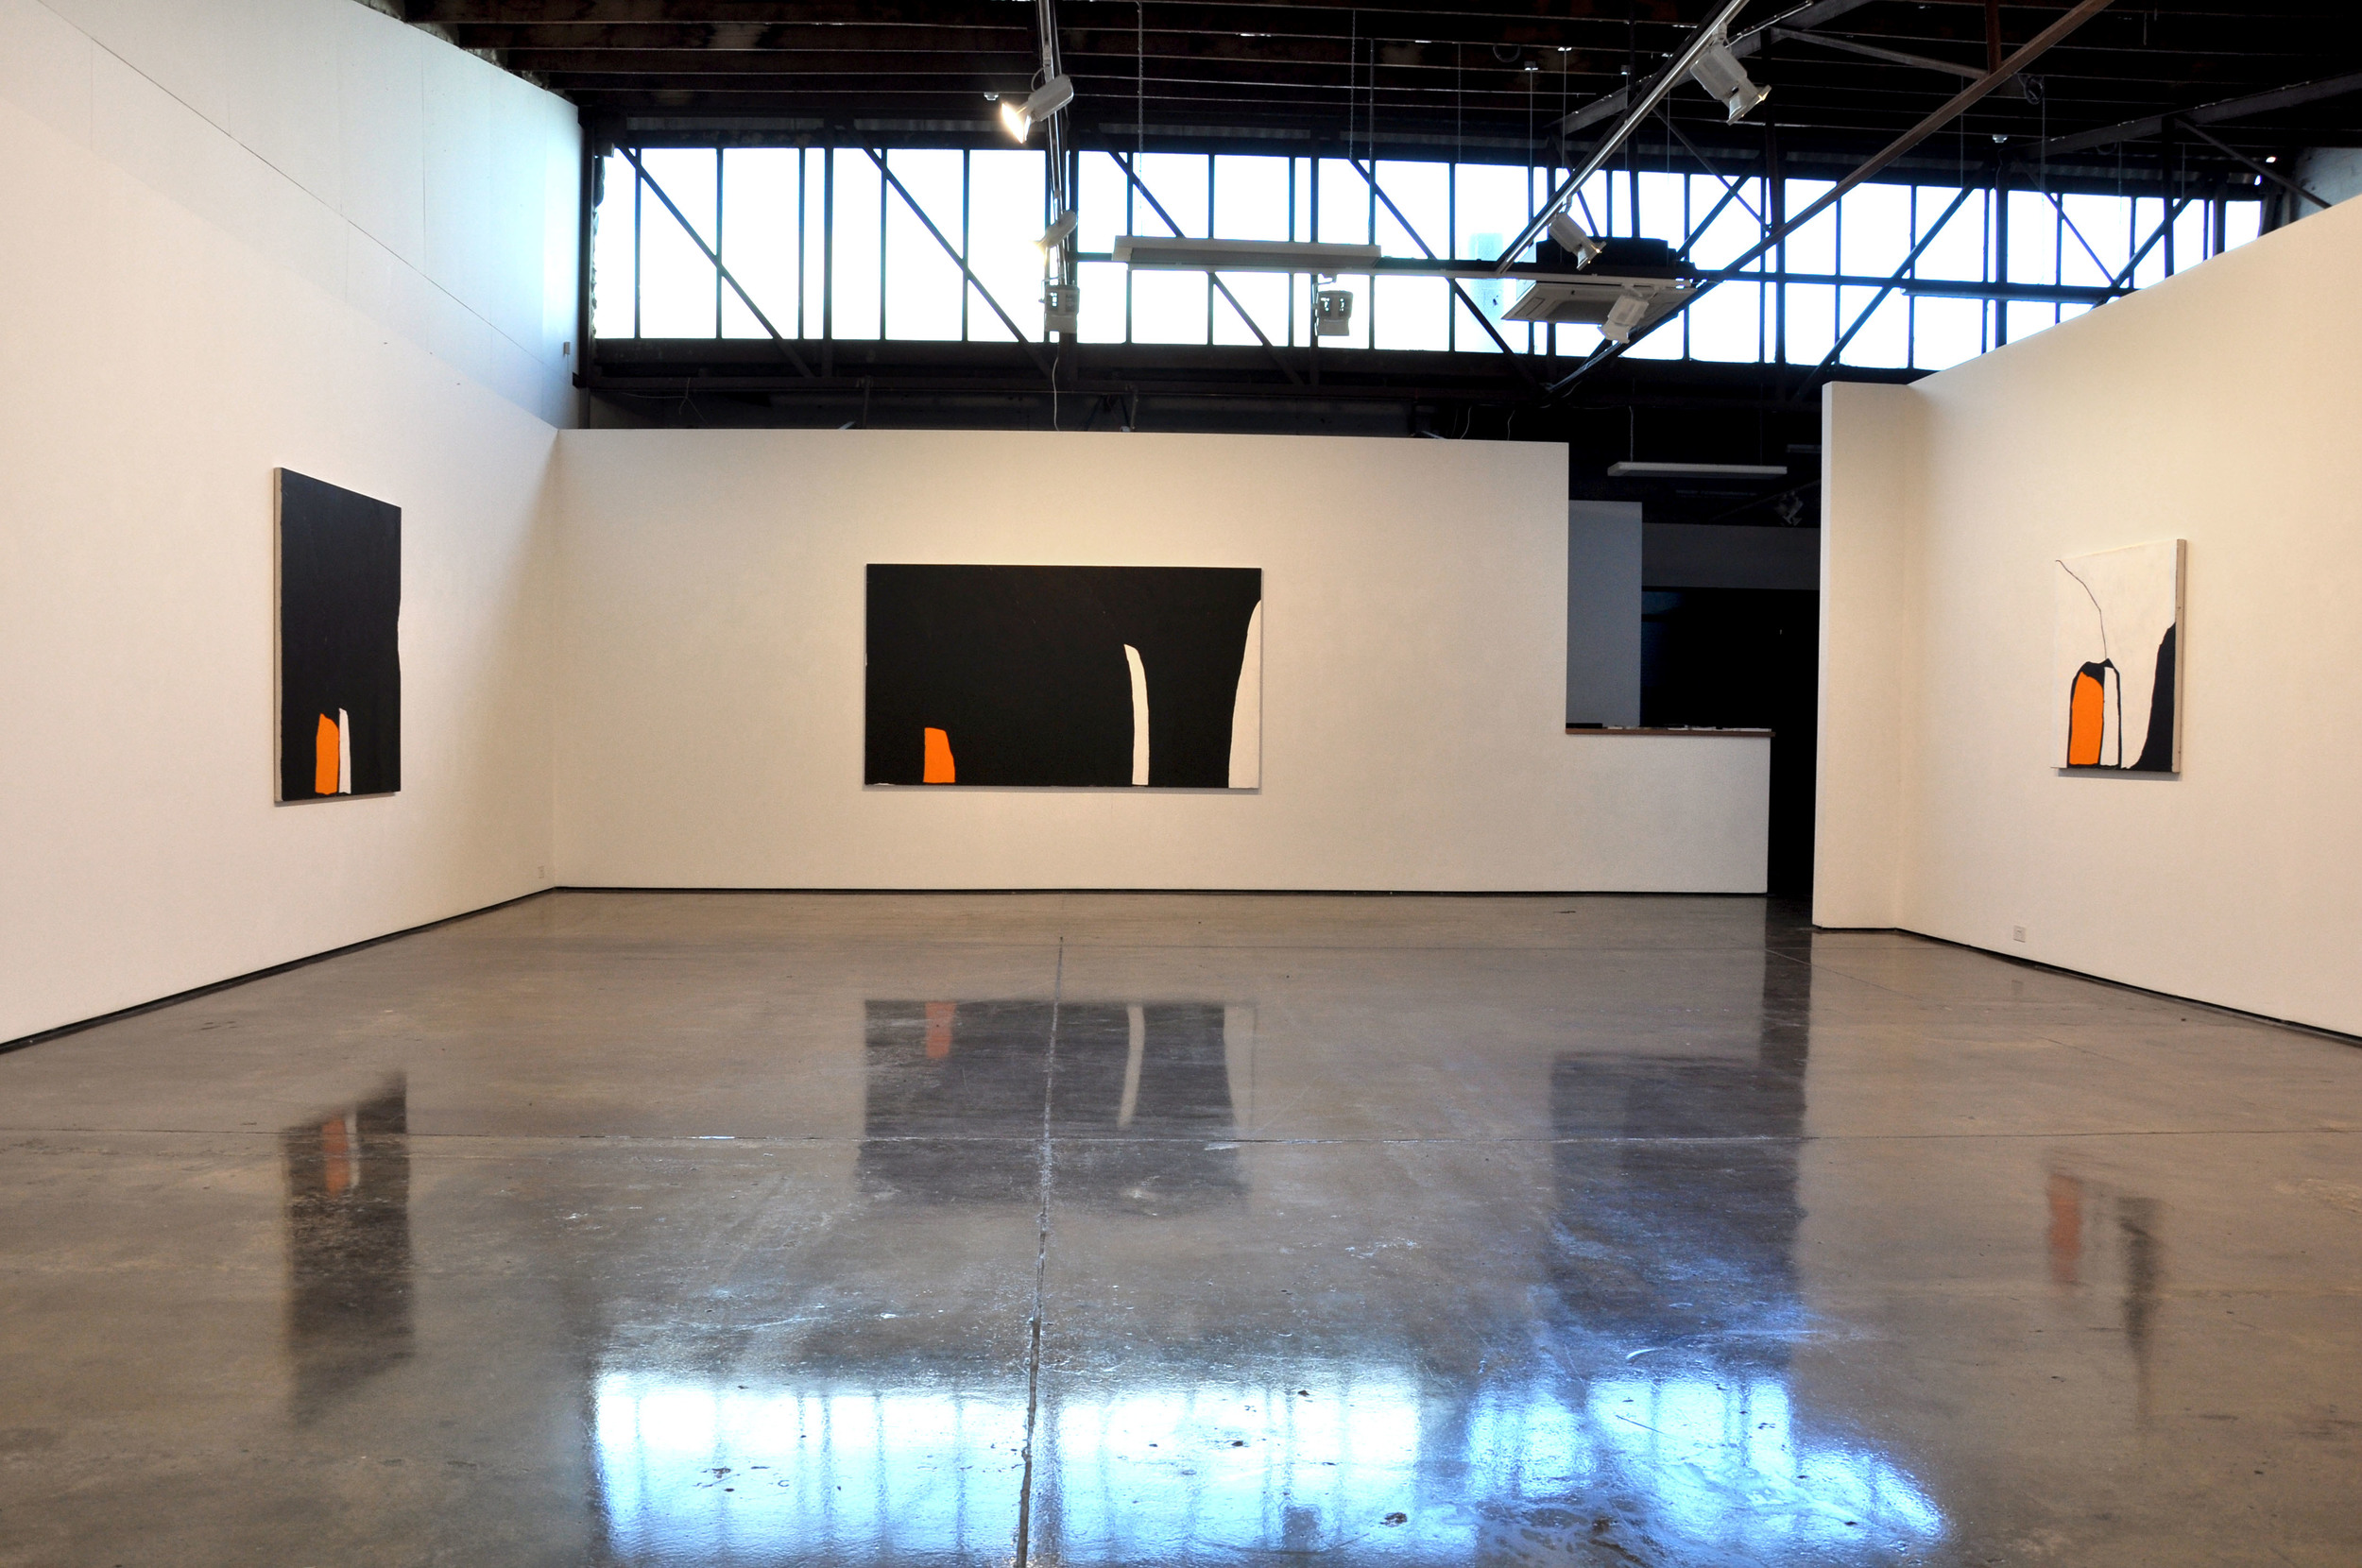 Another echo, 2015 (far wall)